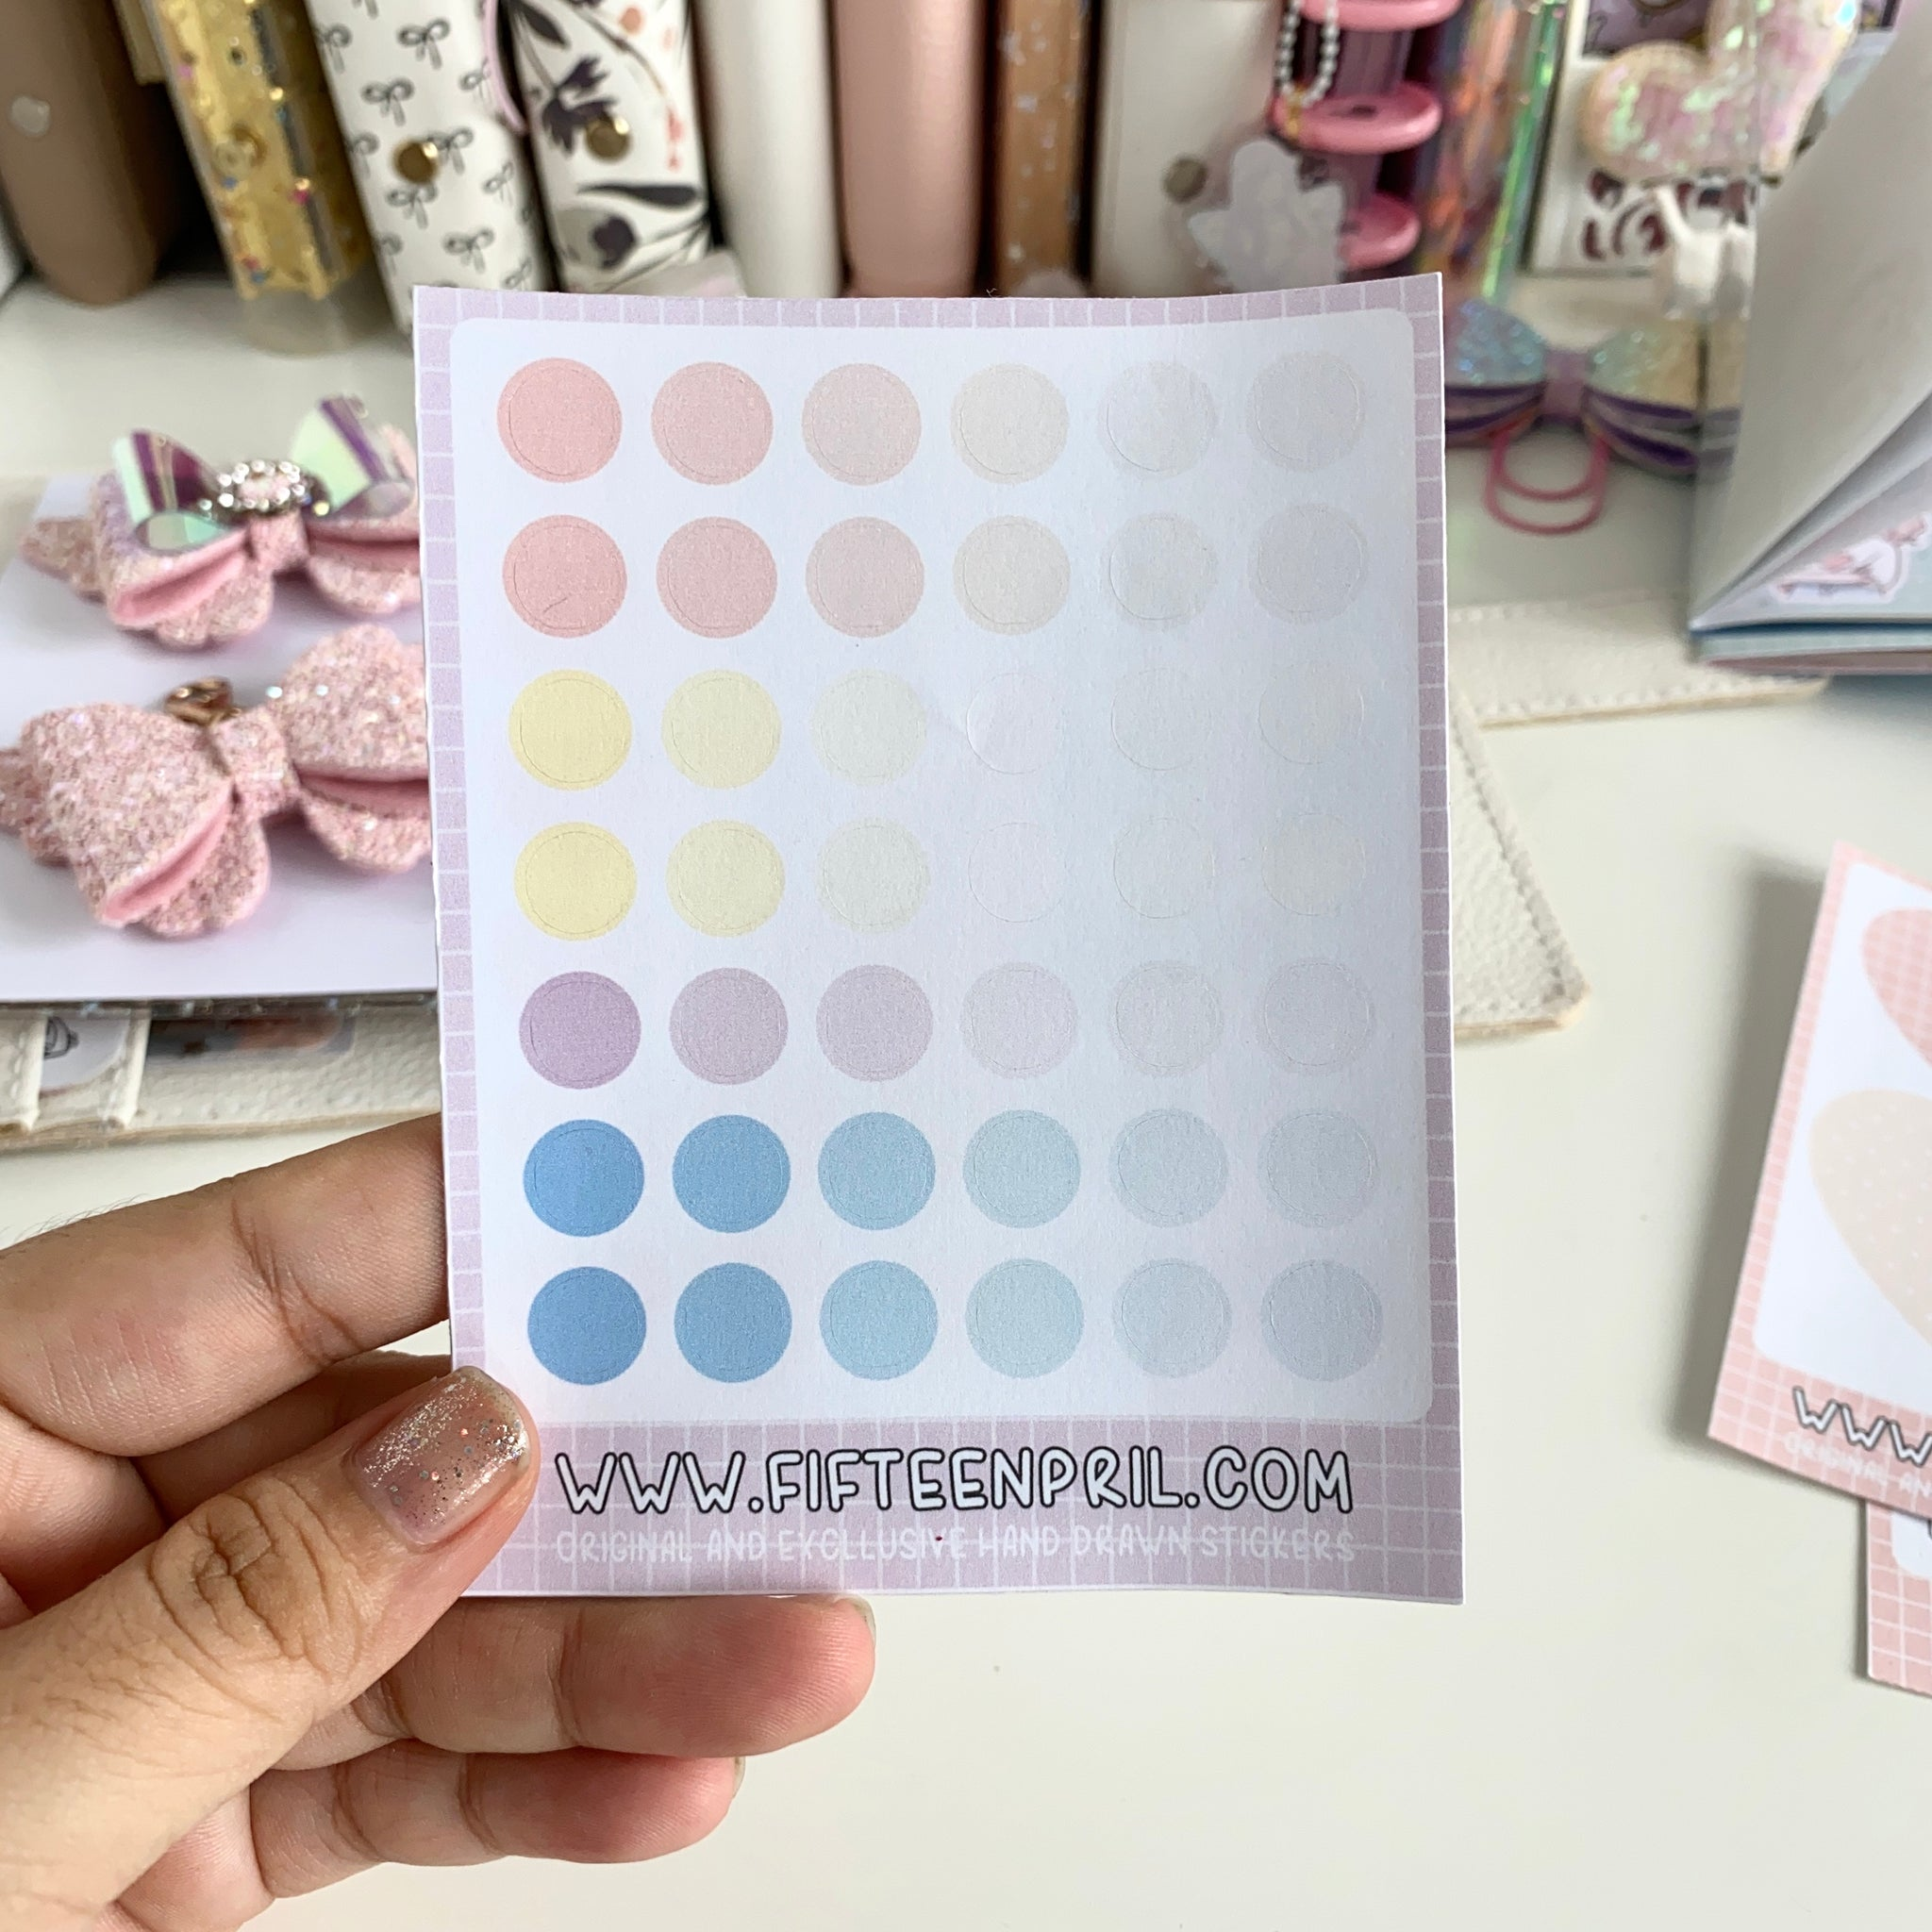 Bujo-Round dots stickers